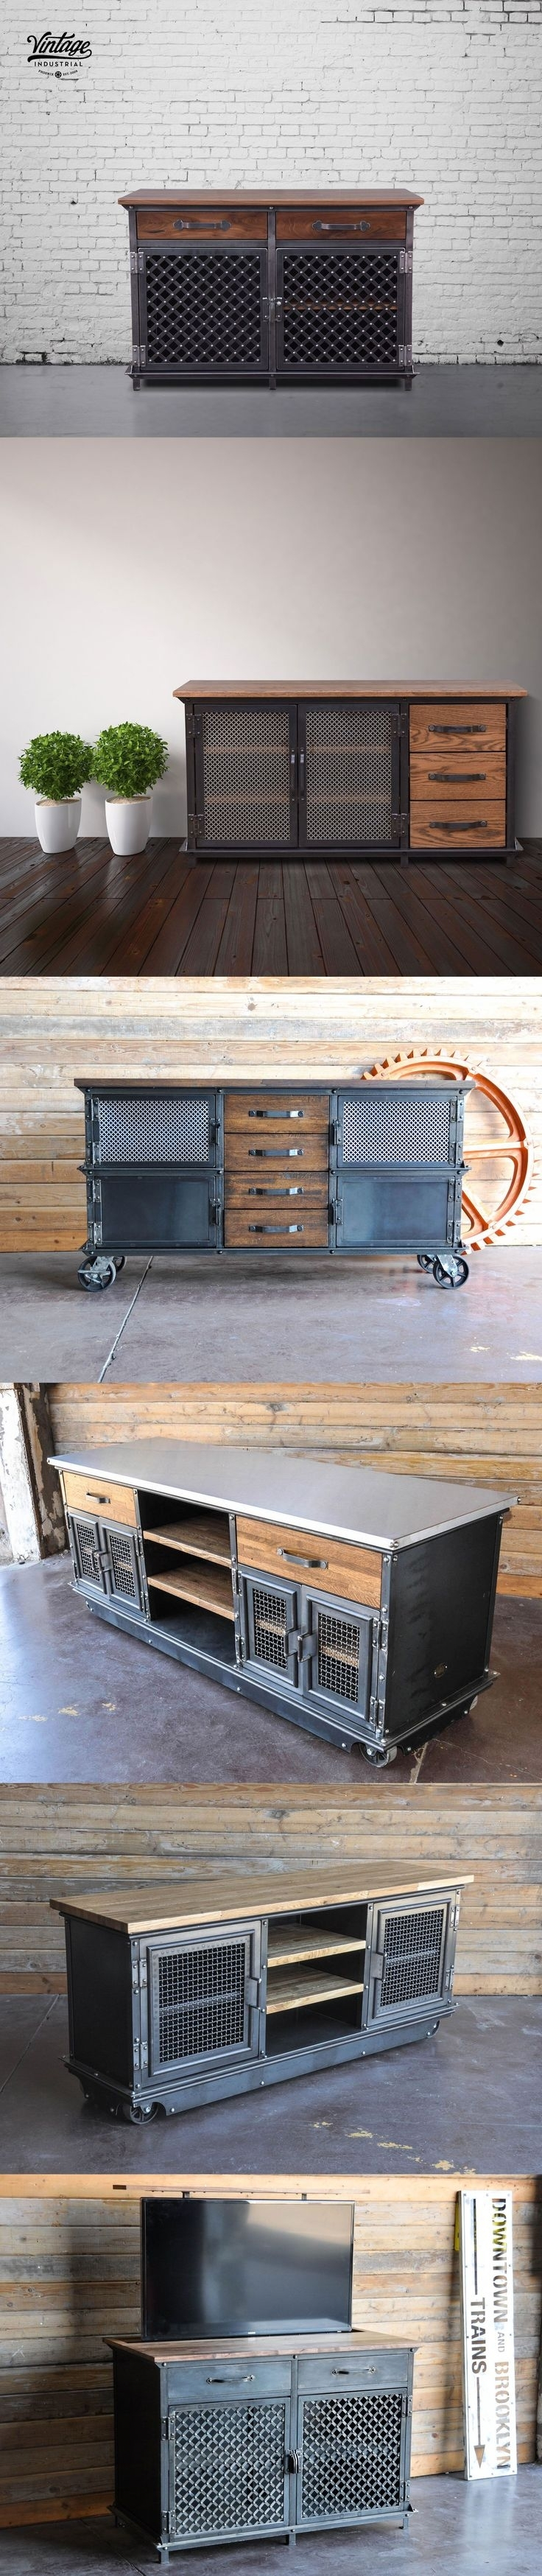 21 Best Diy Images On Pinterest | Home Ideas, Furniture And Woodworking For Marbled Axton Sideboards (View 19 of 26)